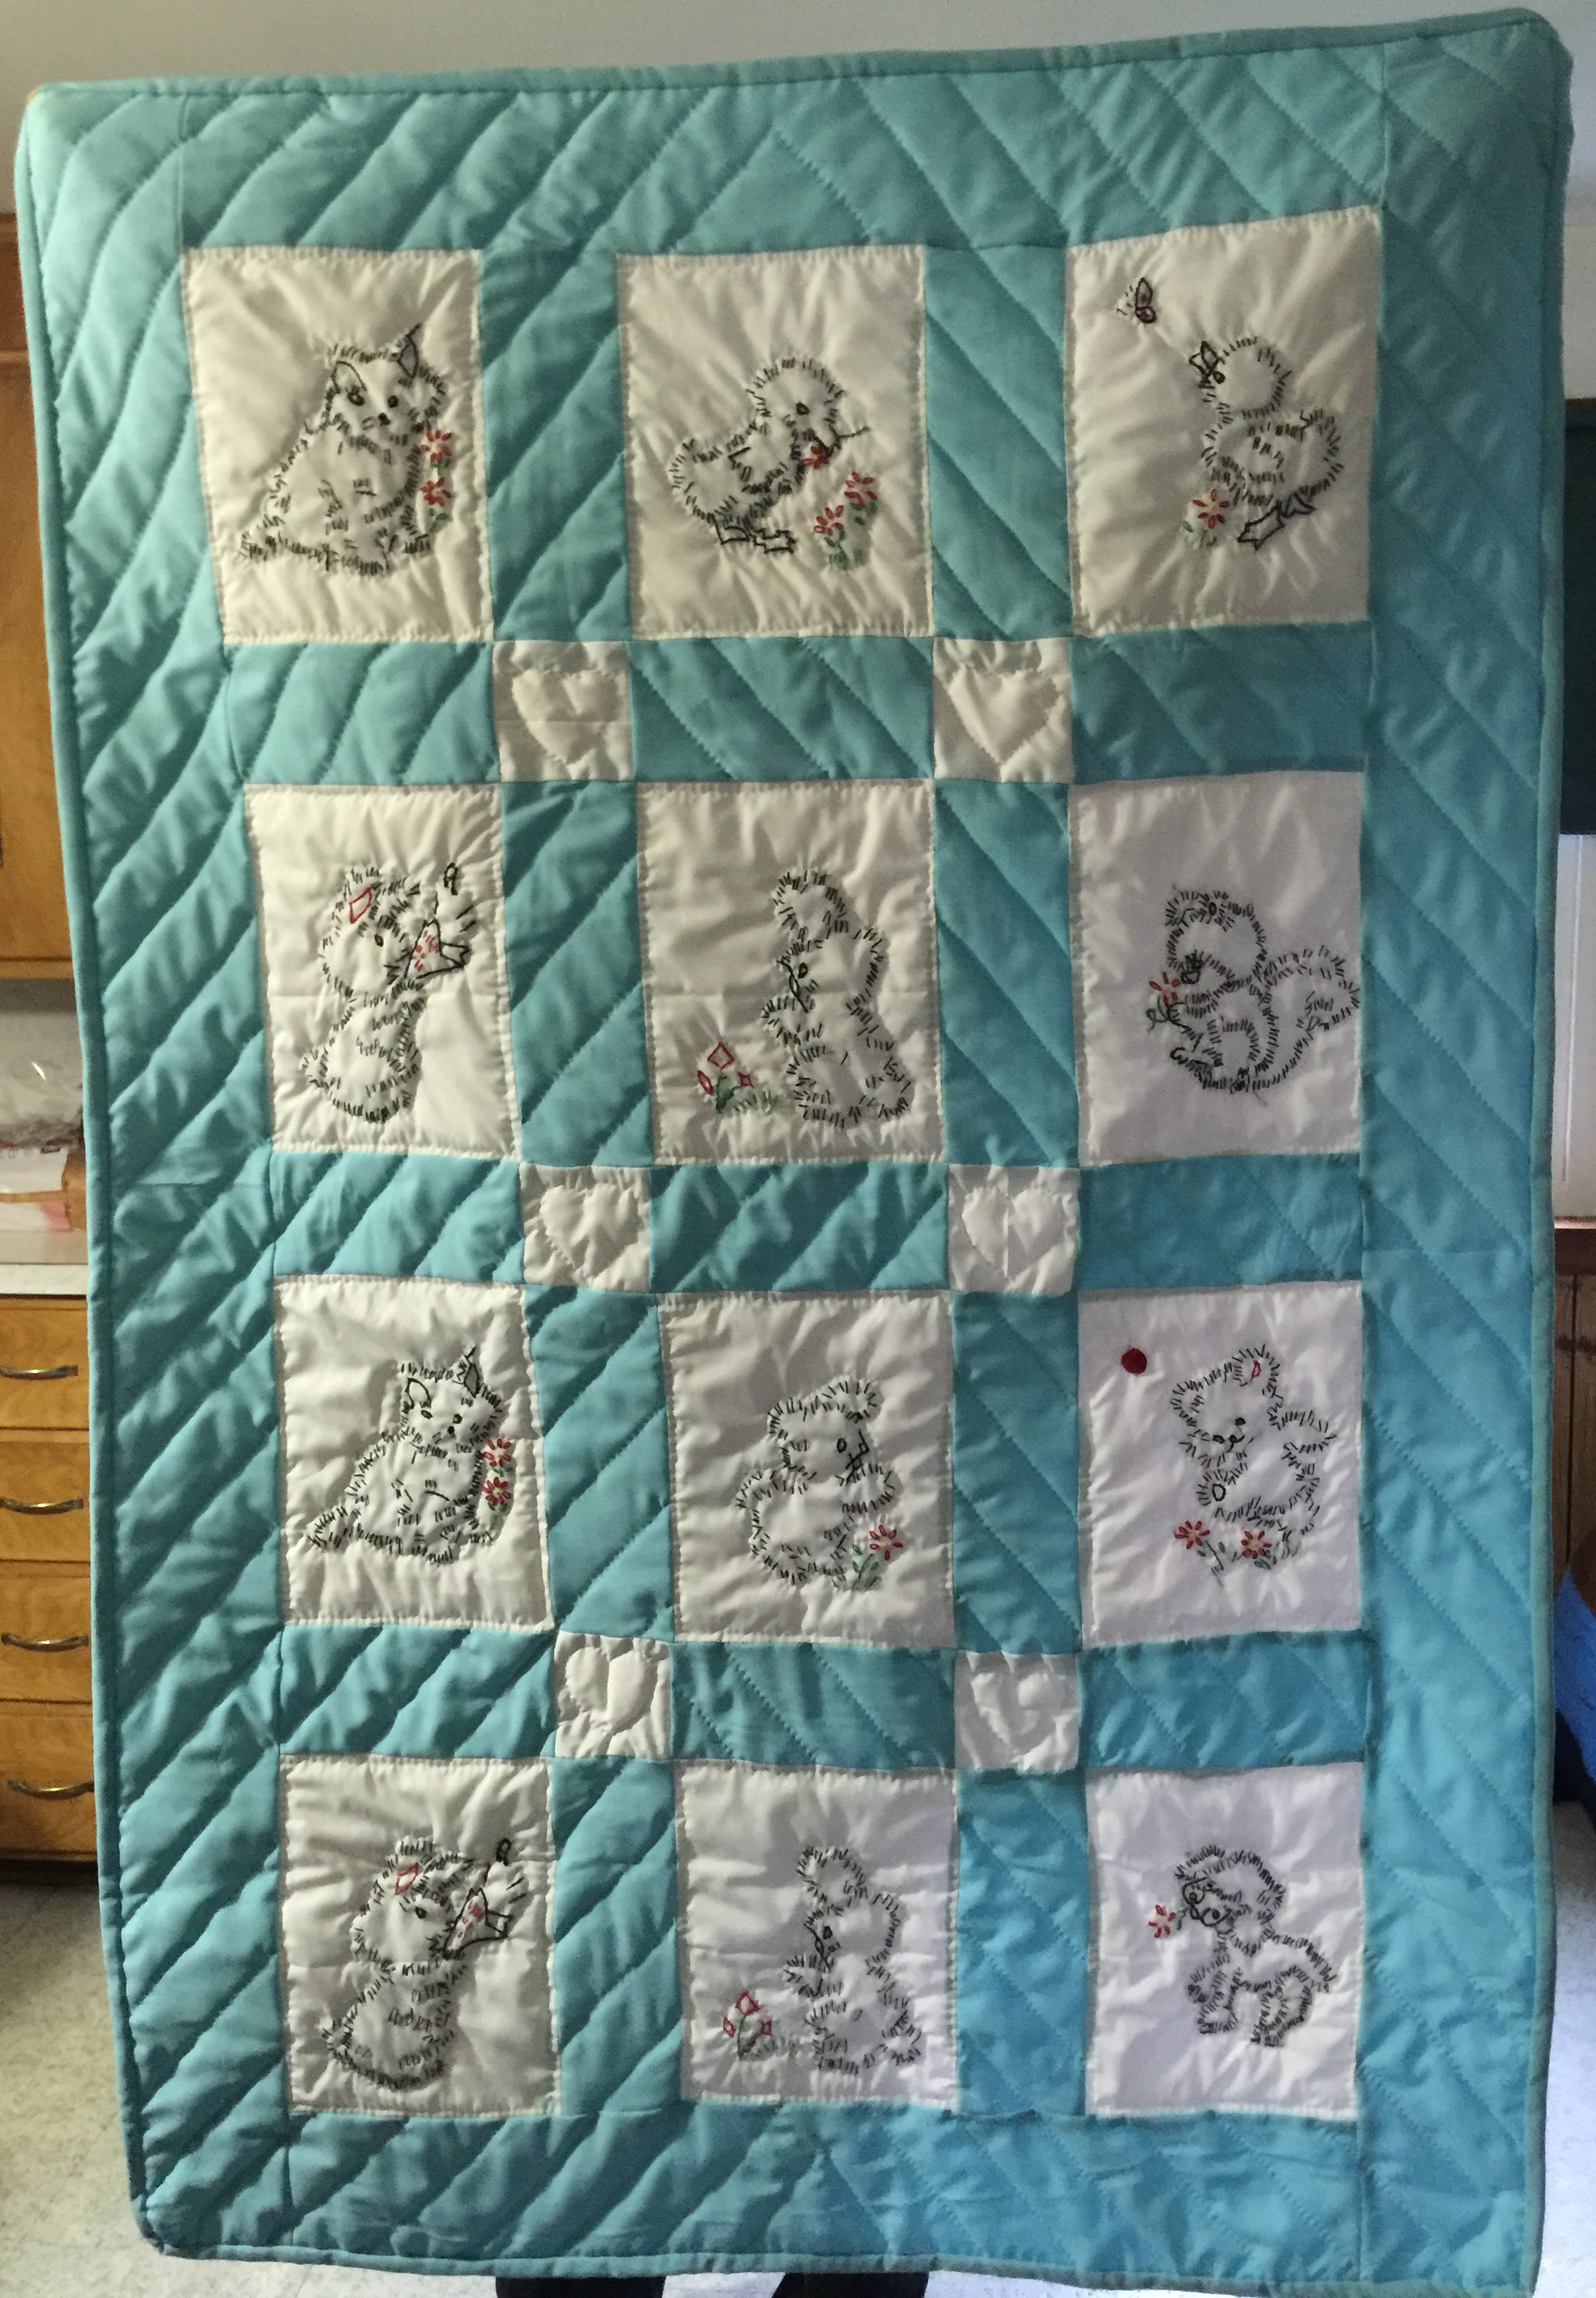 Amish Handmade Quilts For Baby And Adult Quillows Pillows